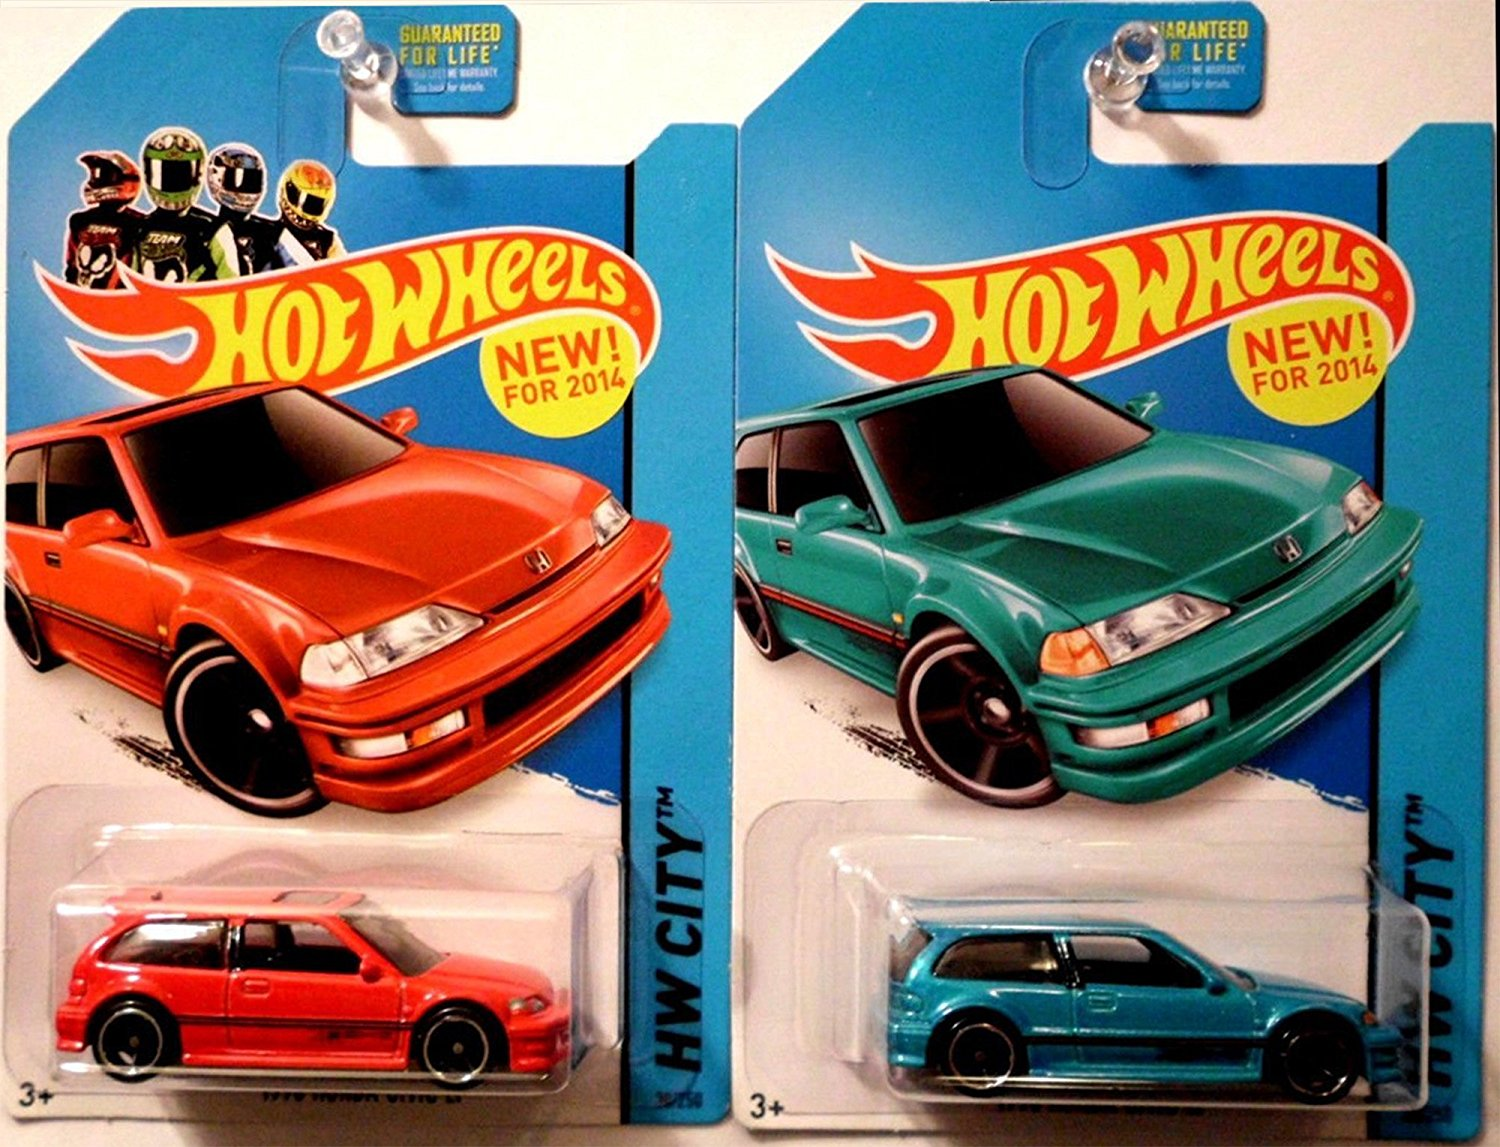 HONDA CIVIC Hot Wheels - 2014 HW City - Night Burnerz - Set of 2: Teal & Red 1990 Honda Civic EF 1:64 Scale Collectible Die Cast Metal Toy Car Model #30/250